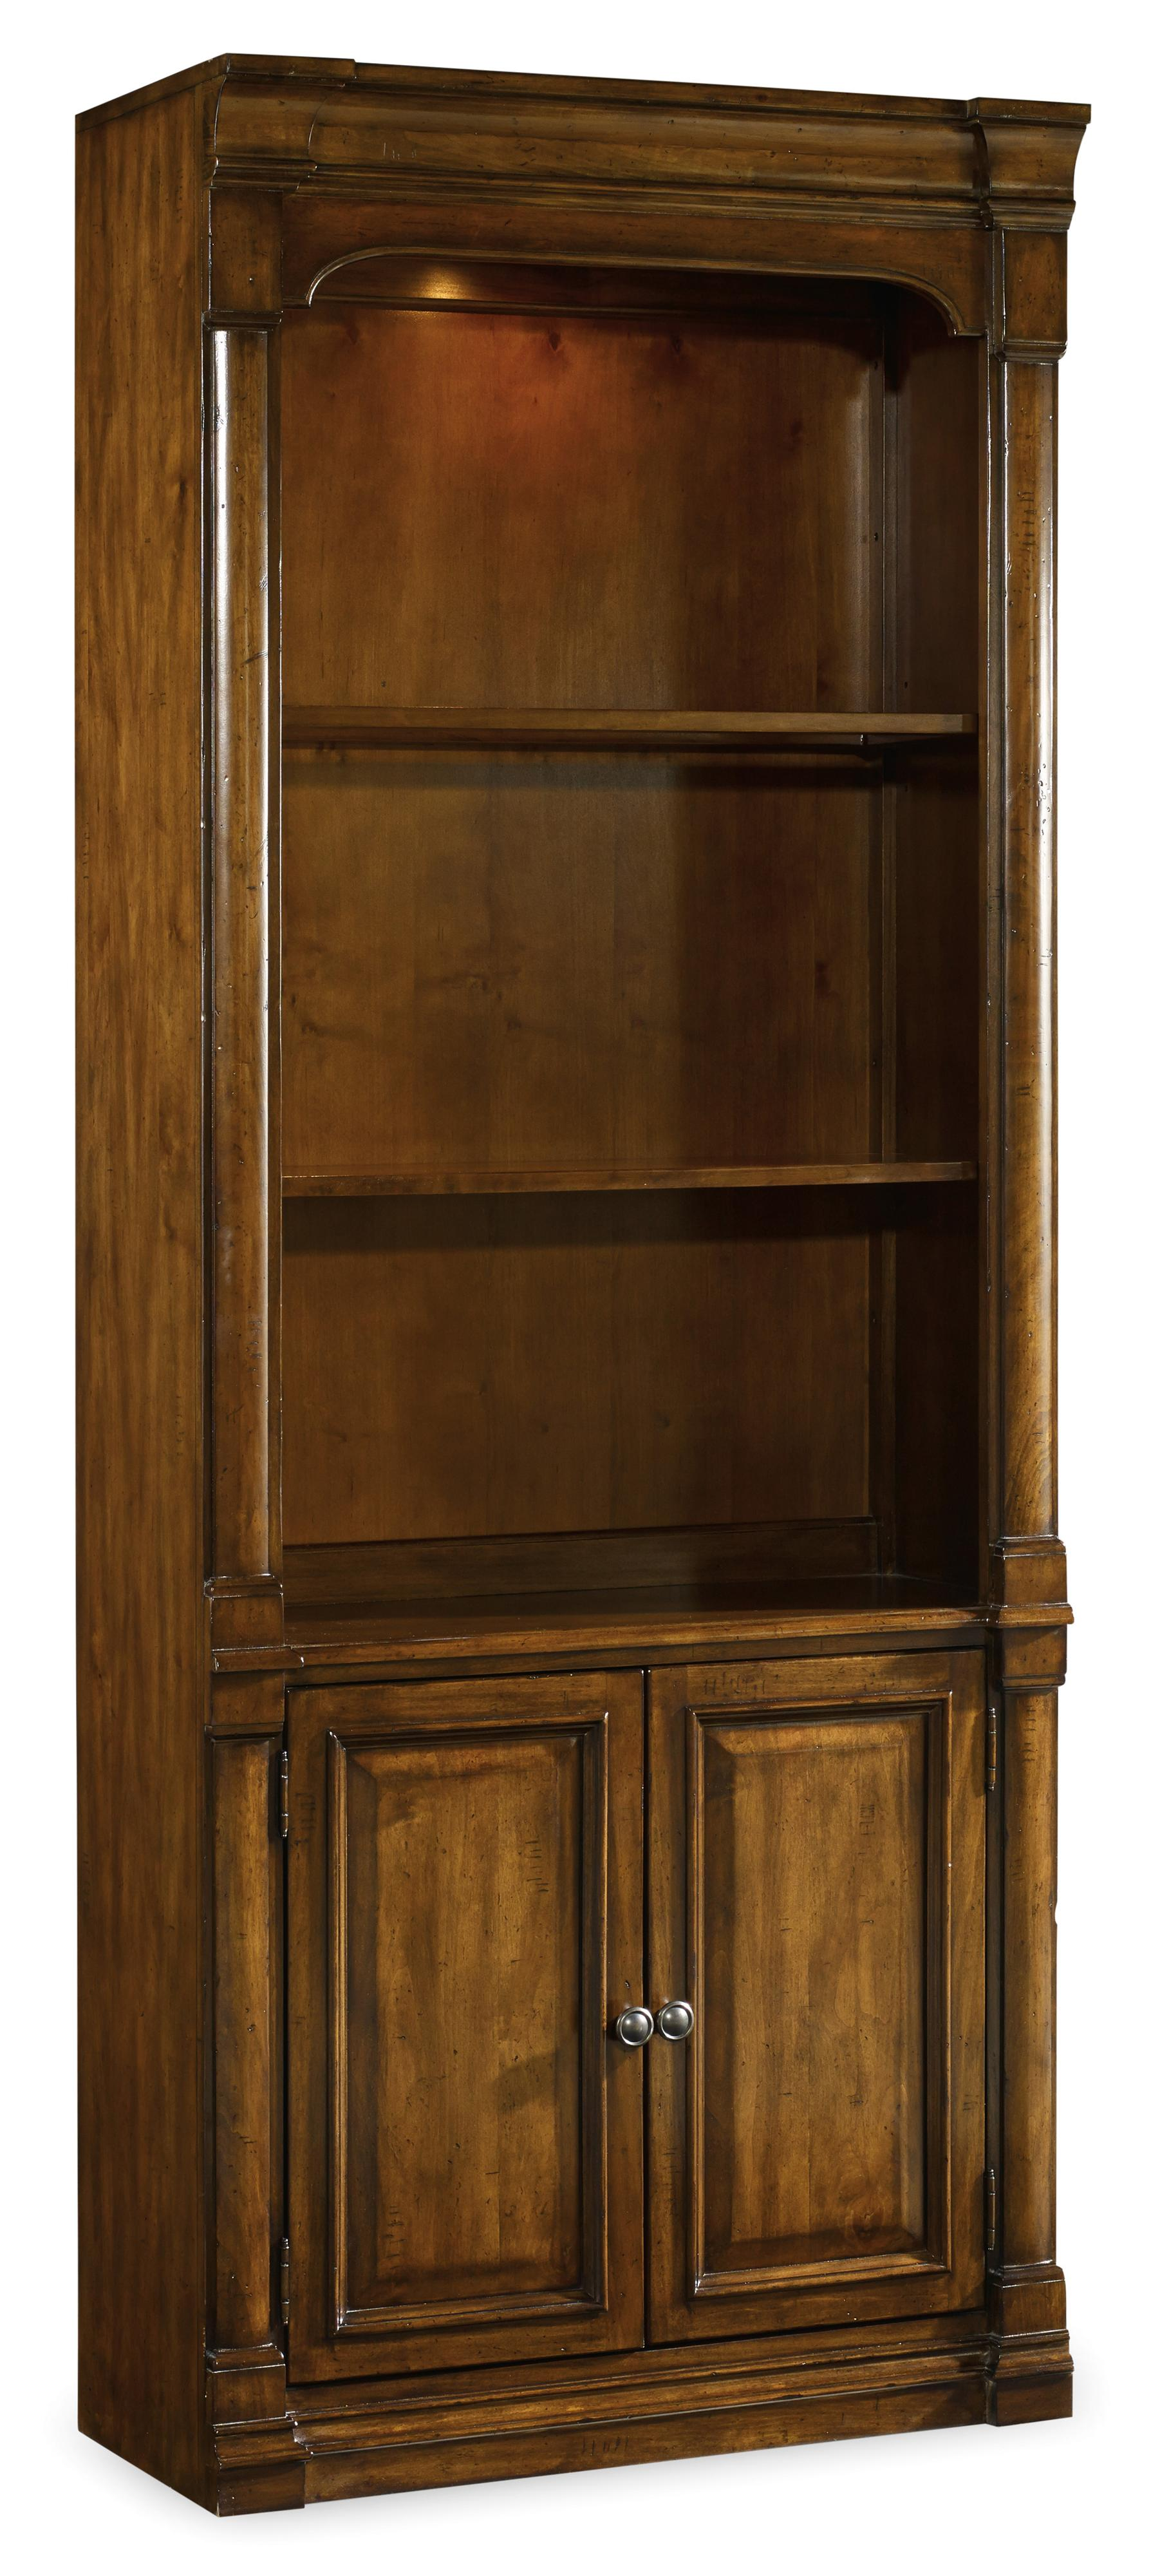 Hooker Furniture Tynecastle Bunching Bookcase - Item Number: 5323-10446